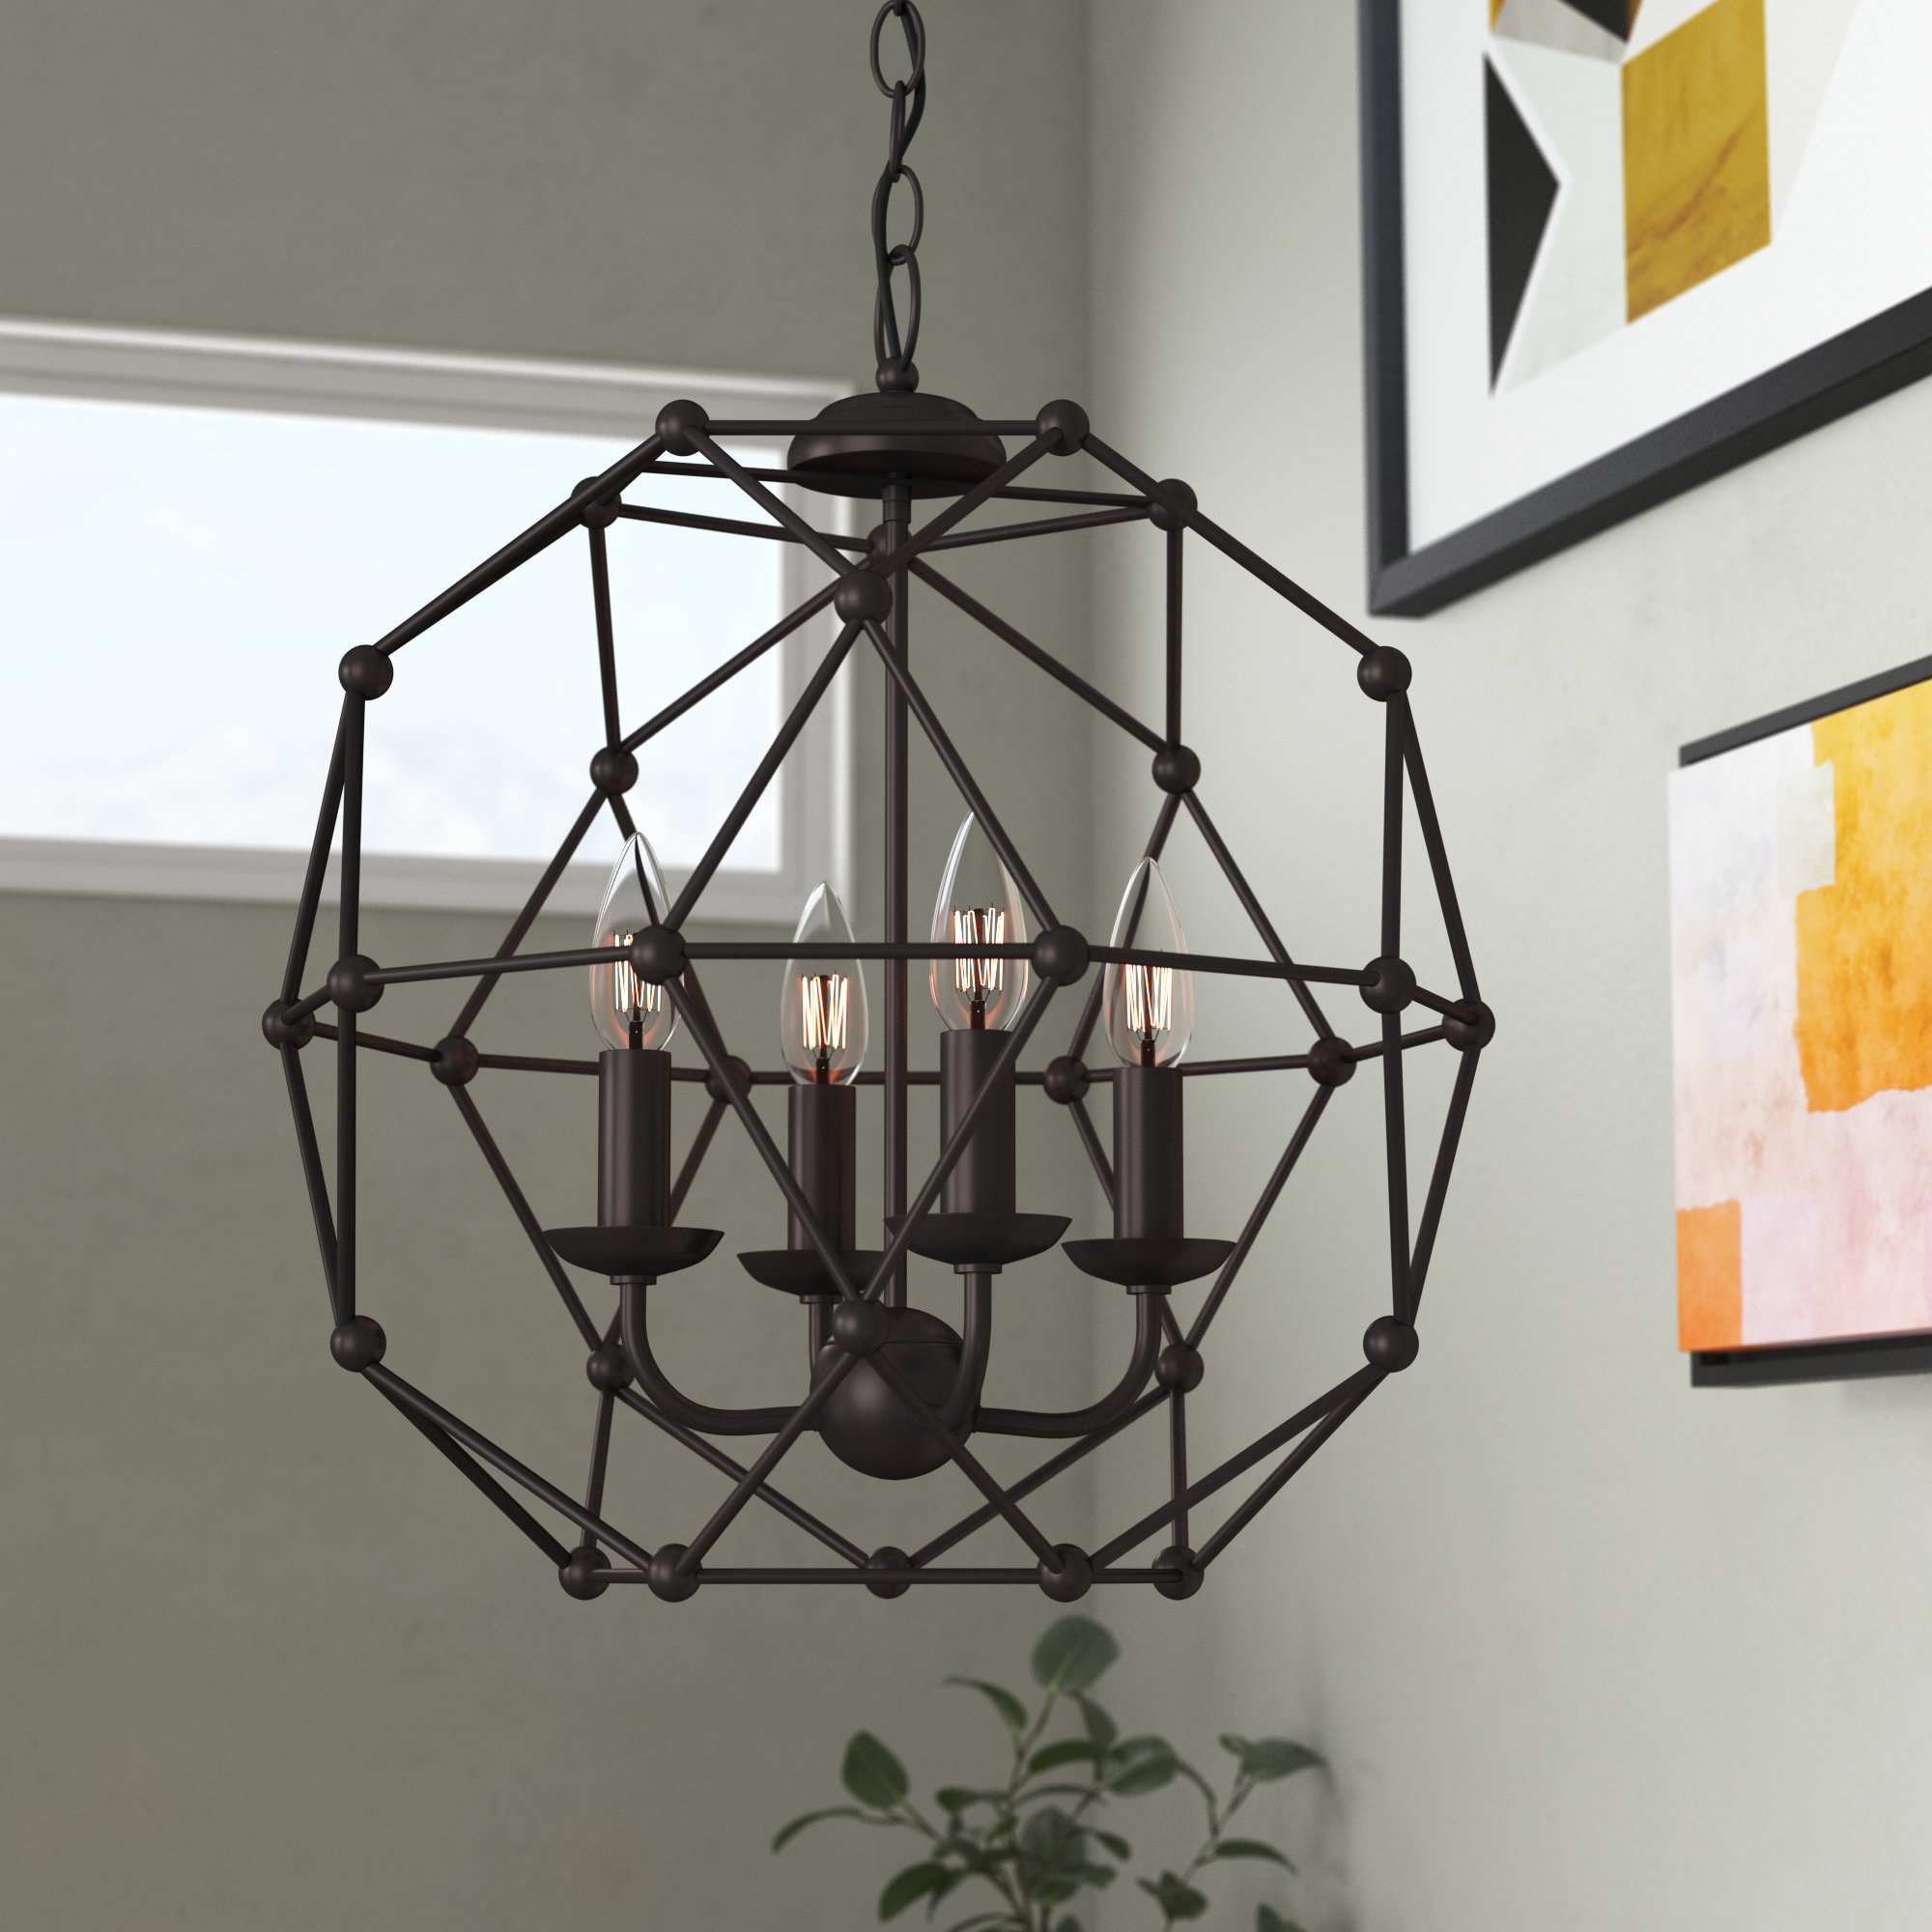 Latest Cavanagh 4 Light Geometric Chandeliers Within Mercury Row Cavanagh 4 Light Geometric Chandelier (View 5 of 20)